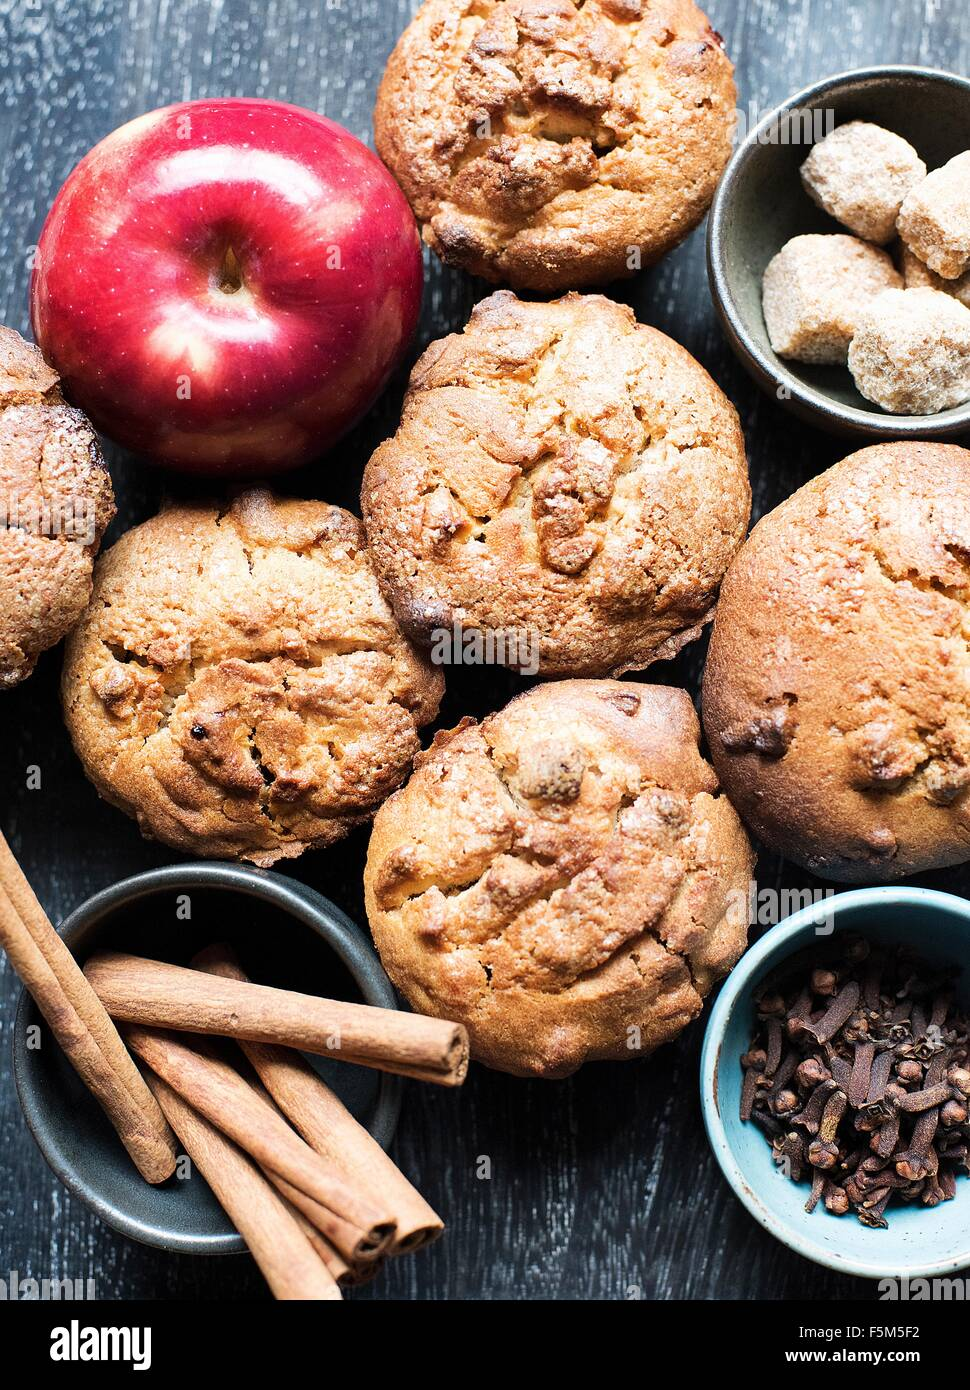 Muffins aux pommes, cannelle et girofle, overhead view Photo Stock